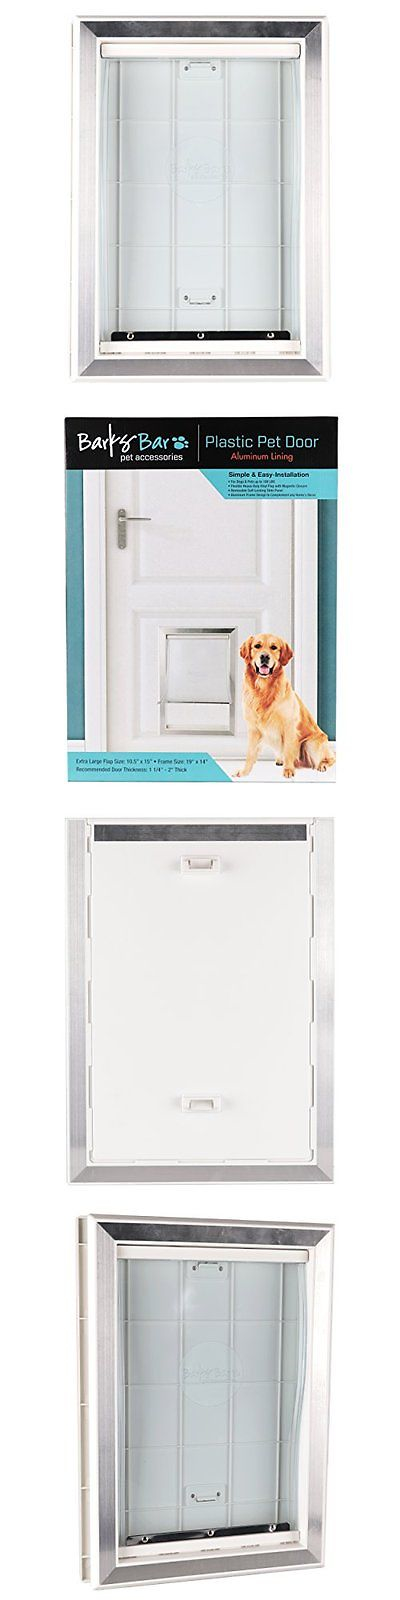 Doors And Flaps 116379 Pet Door Large Frame Easy Install Dog Flap